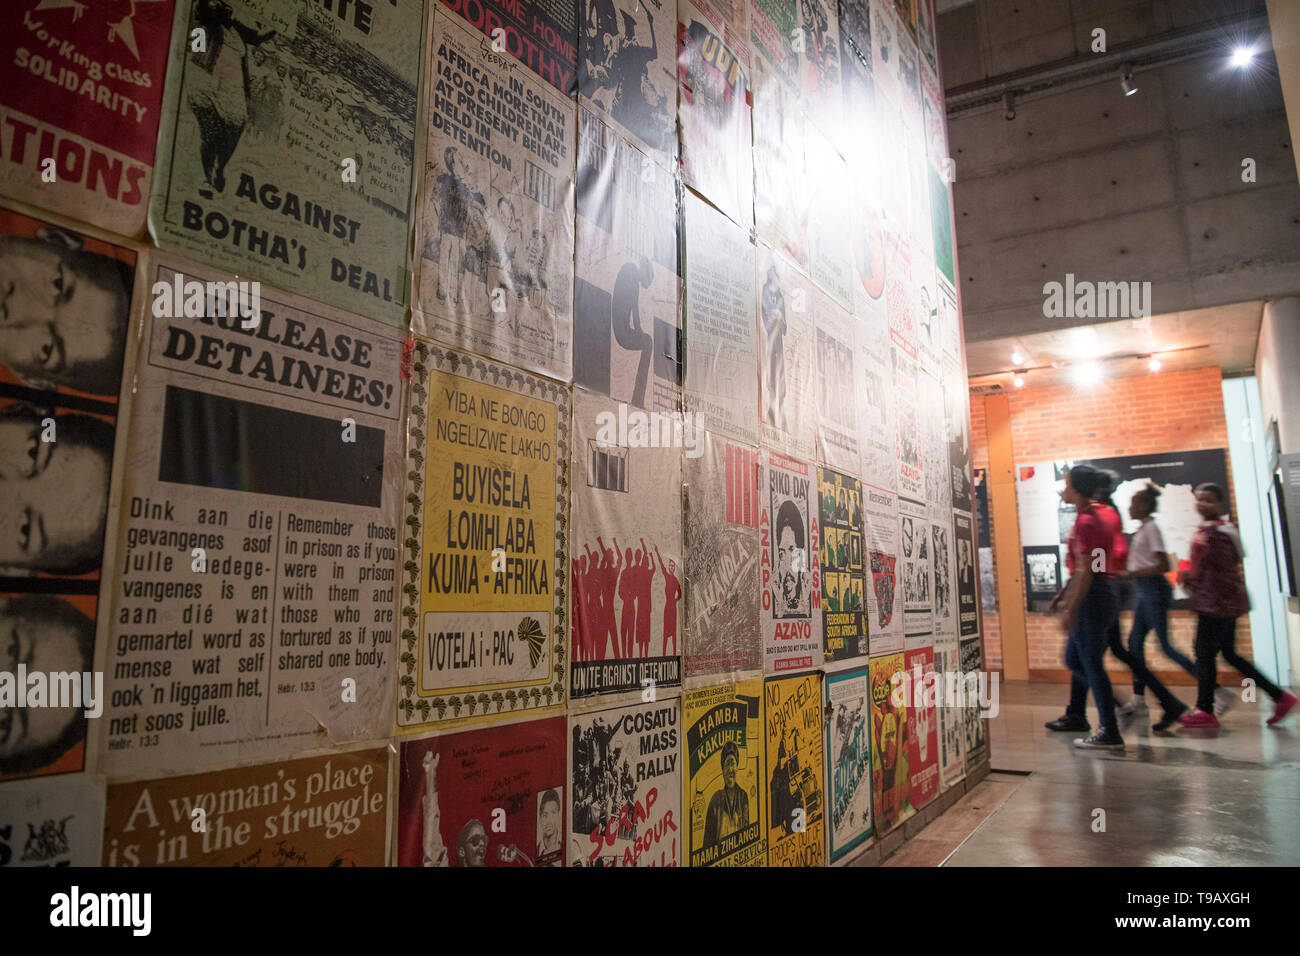 Beijing, China. 17th May, 2019. Photo taken on May 17, 2019 shows a wall covered with slogans from the apartheid era in the Apartheid Museum in Johannesburg, South Africa. The Apartheid Museum opens a window into South Africa's past struggle with colonial domination, injustices and racial segregation while spotlighting the dawn of an independence era marked with racial integration and just rule. May 18 marks the International Museum Day. Credit: Chen Cheng/Xinhua/Alamy Live News - Stock Image